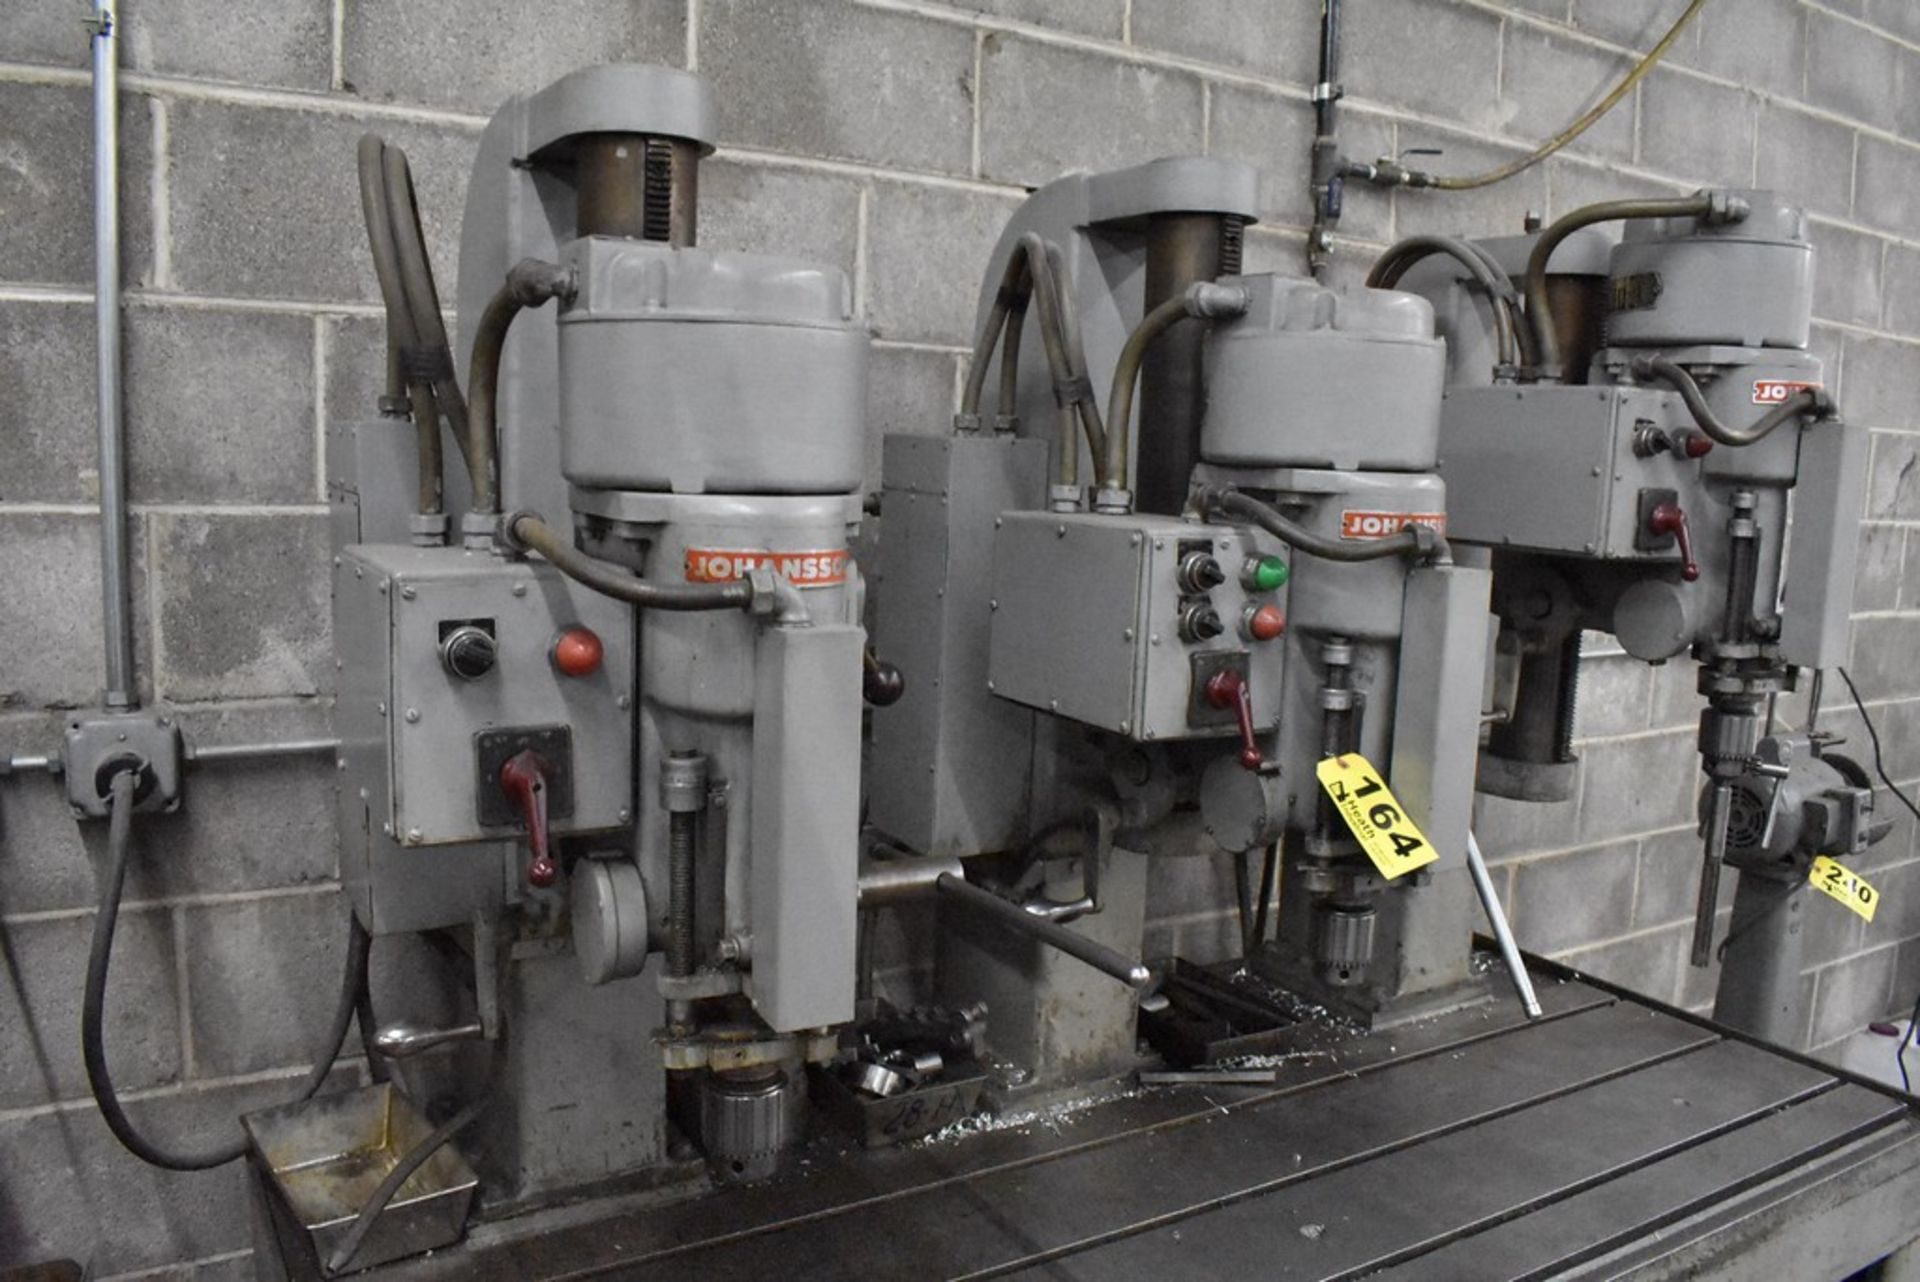 """JOHANNSEN 30"""" 3 SPINDLE DRILL, S/N 11800,11801, &11802, UP TO 1520 RPM SPINDLE, MOUNTED ON 20""""X68"""" - Image 4 of 6"""